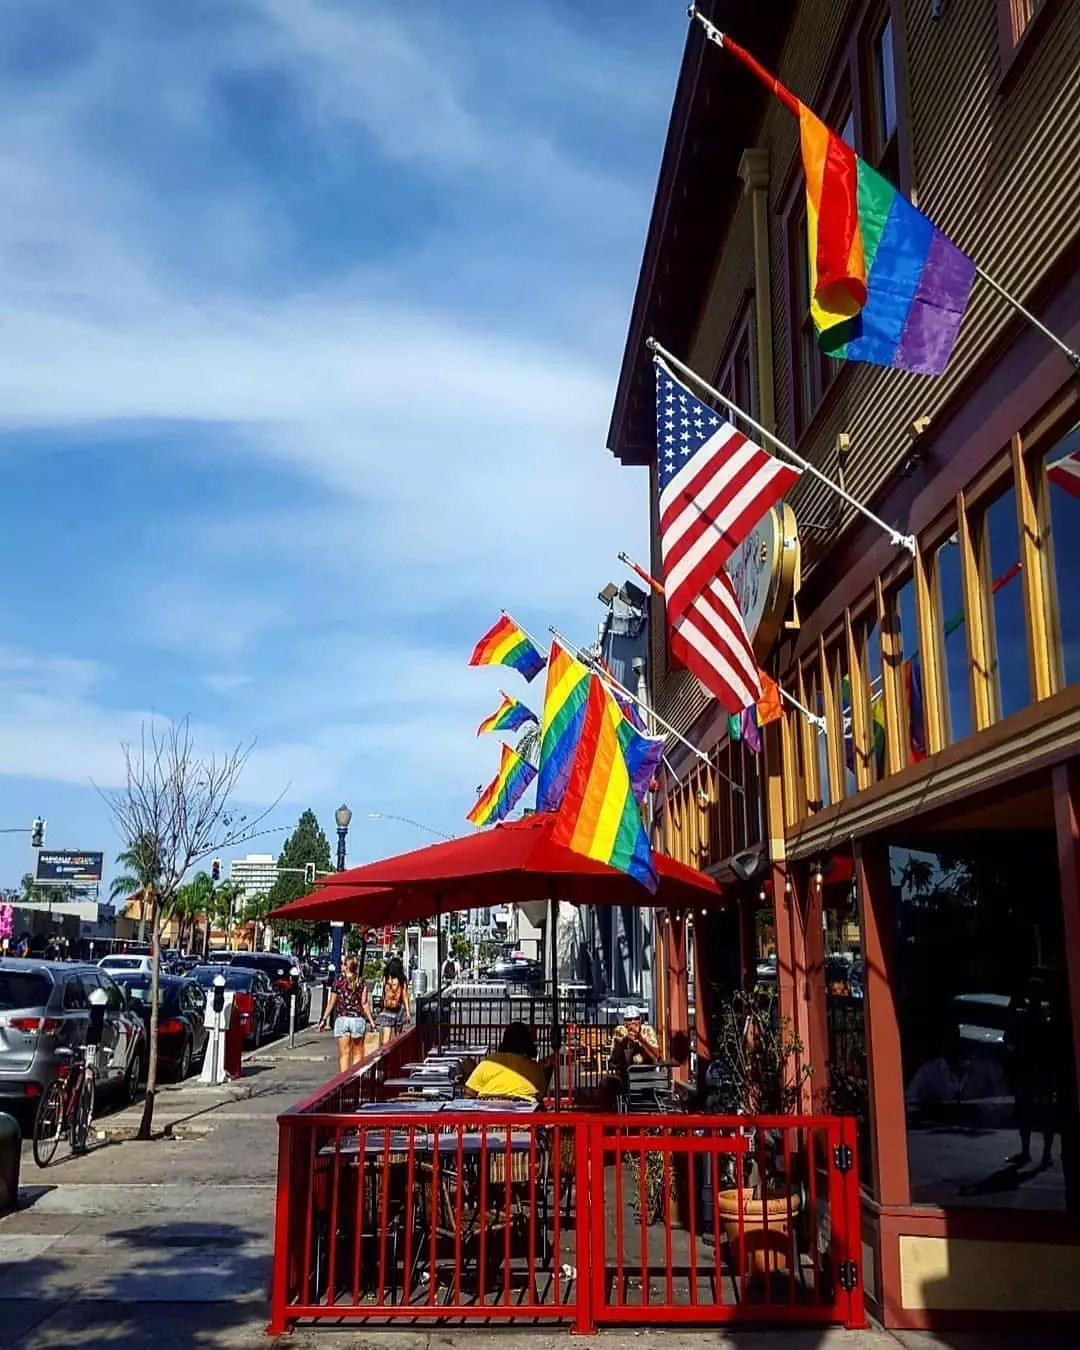 PRIDE flags flying beside a United States glad above the seating area of a sidewalk cafe. Photo by Instagram user @nowtrendingapp